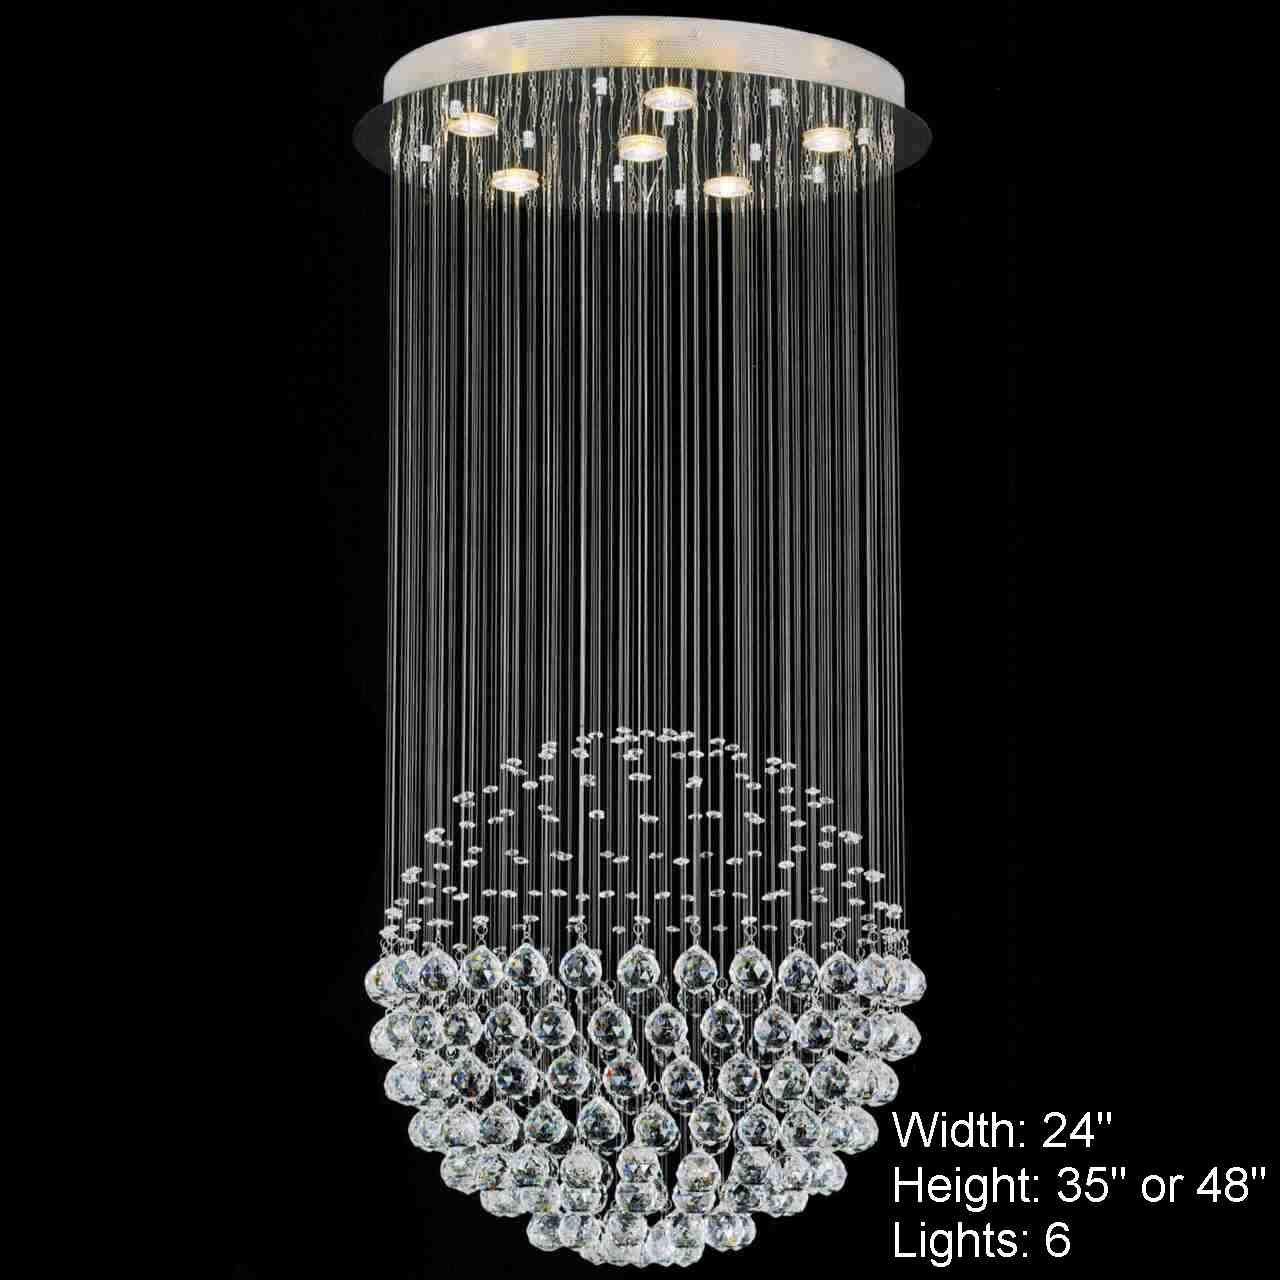 Brizzo lighting stores sphere modern crystal chandelier large picture of sphere modern crystal chandelier large mirror stainless steel base 6 lights aloadofball